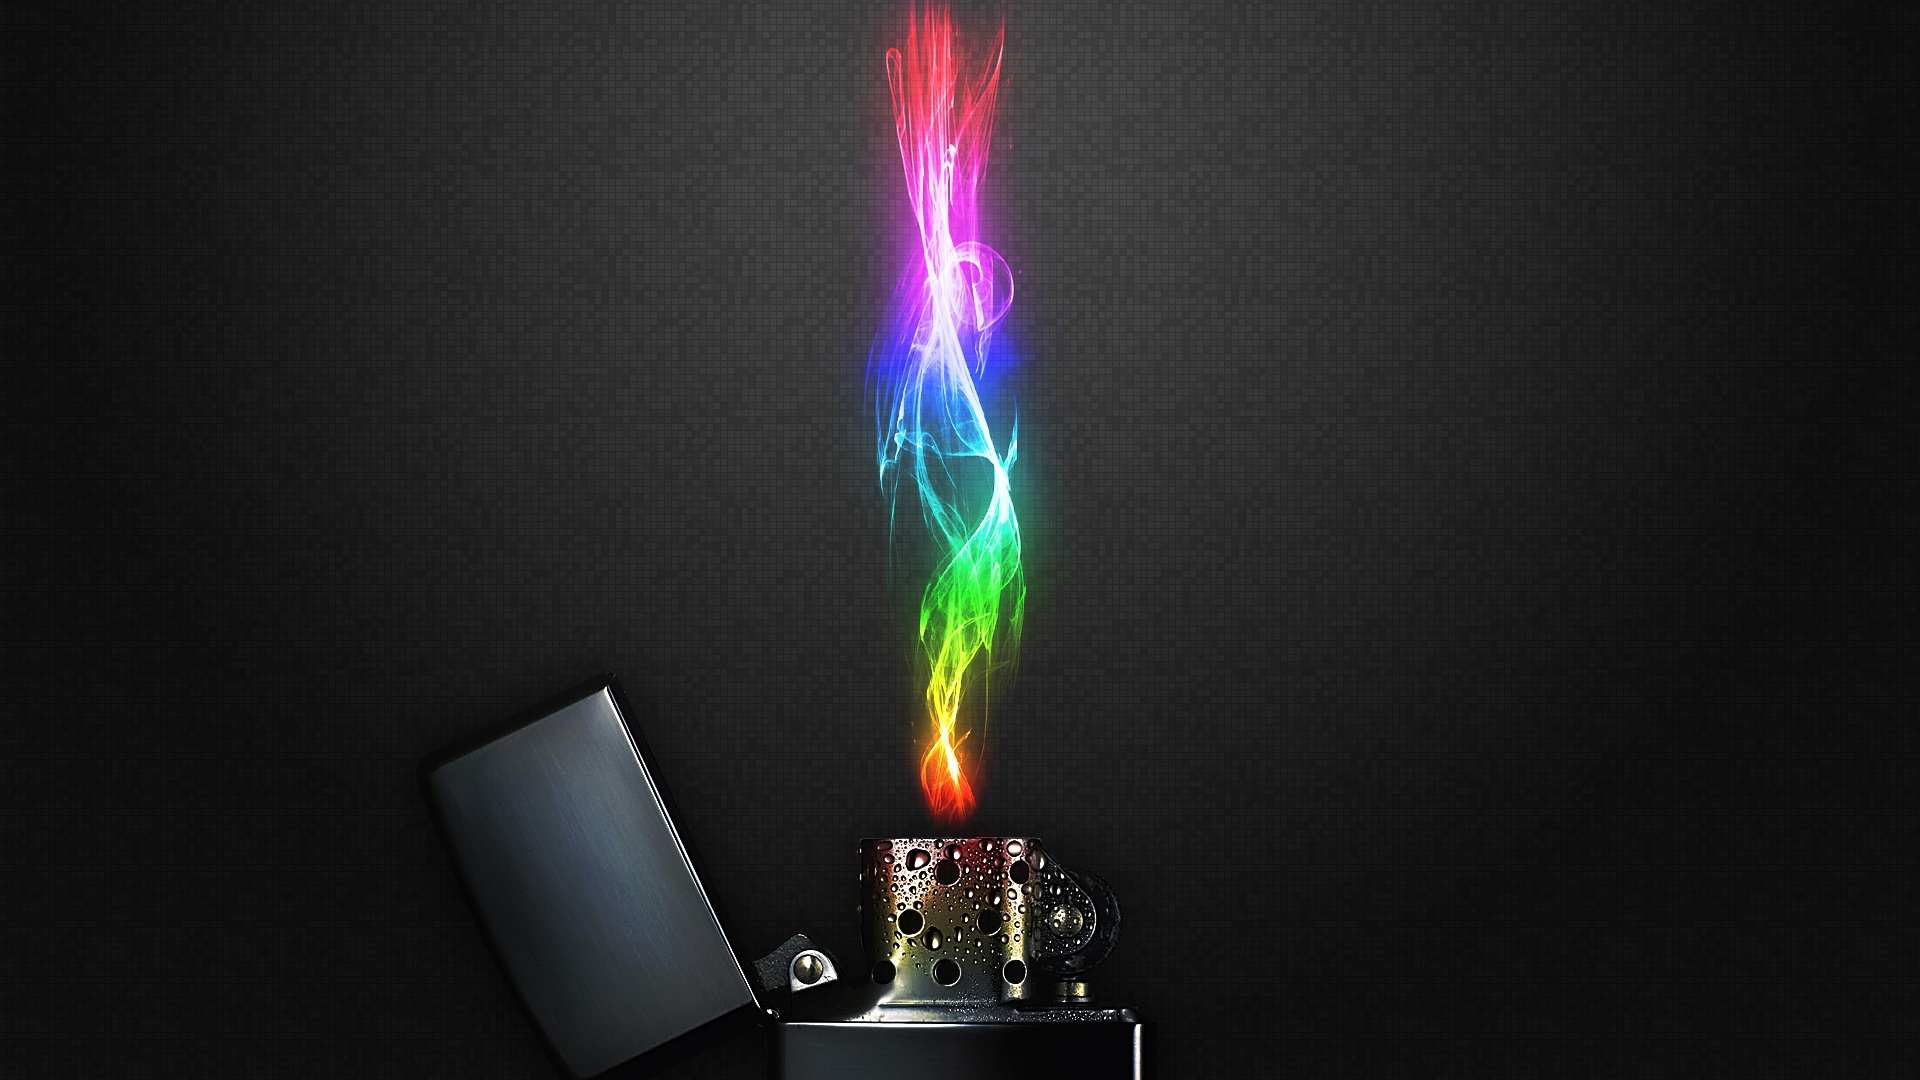 Battlefield Wallpaper Skull Rainbow Lighter wallpa...